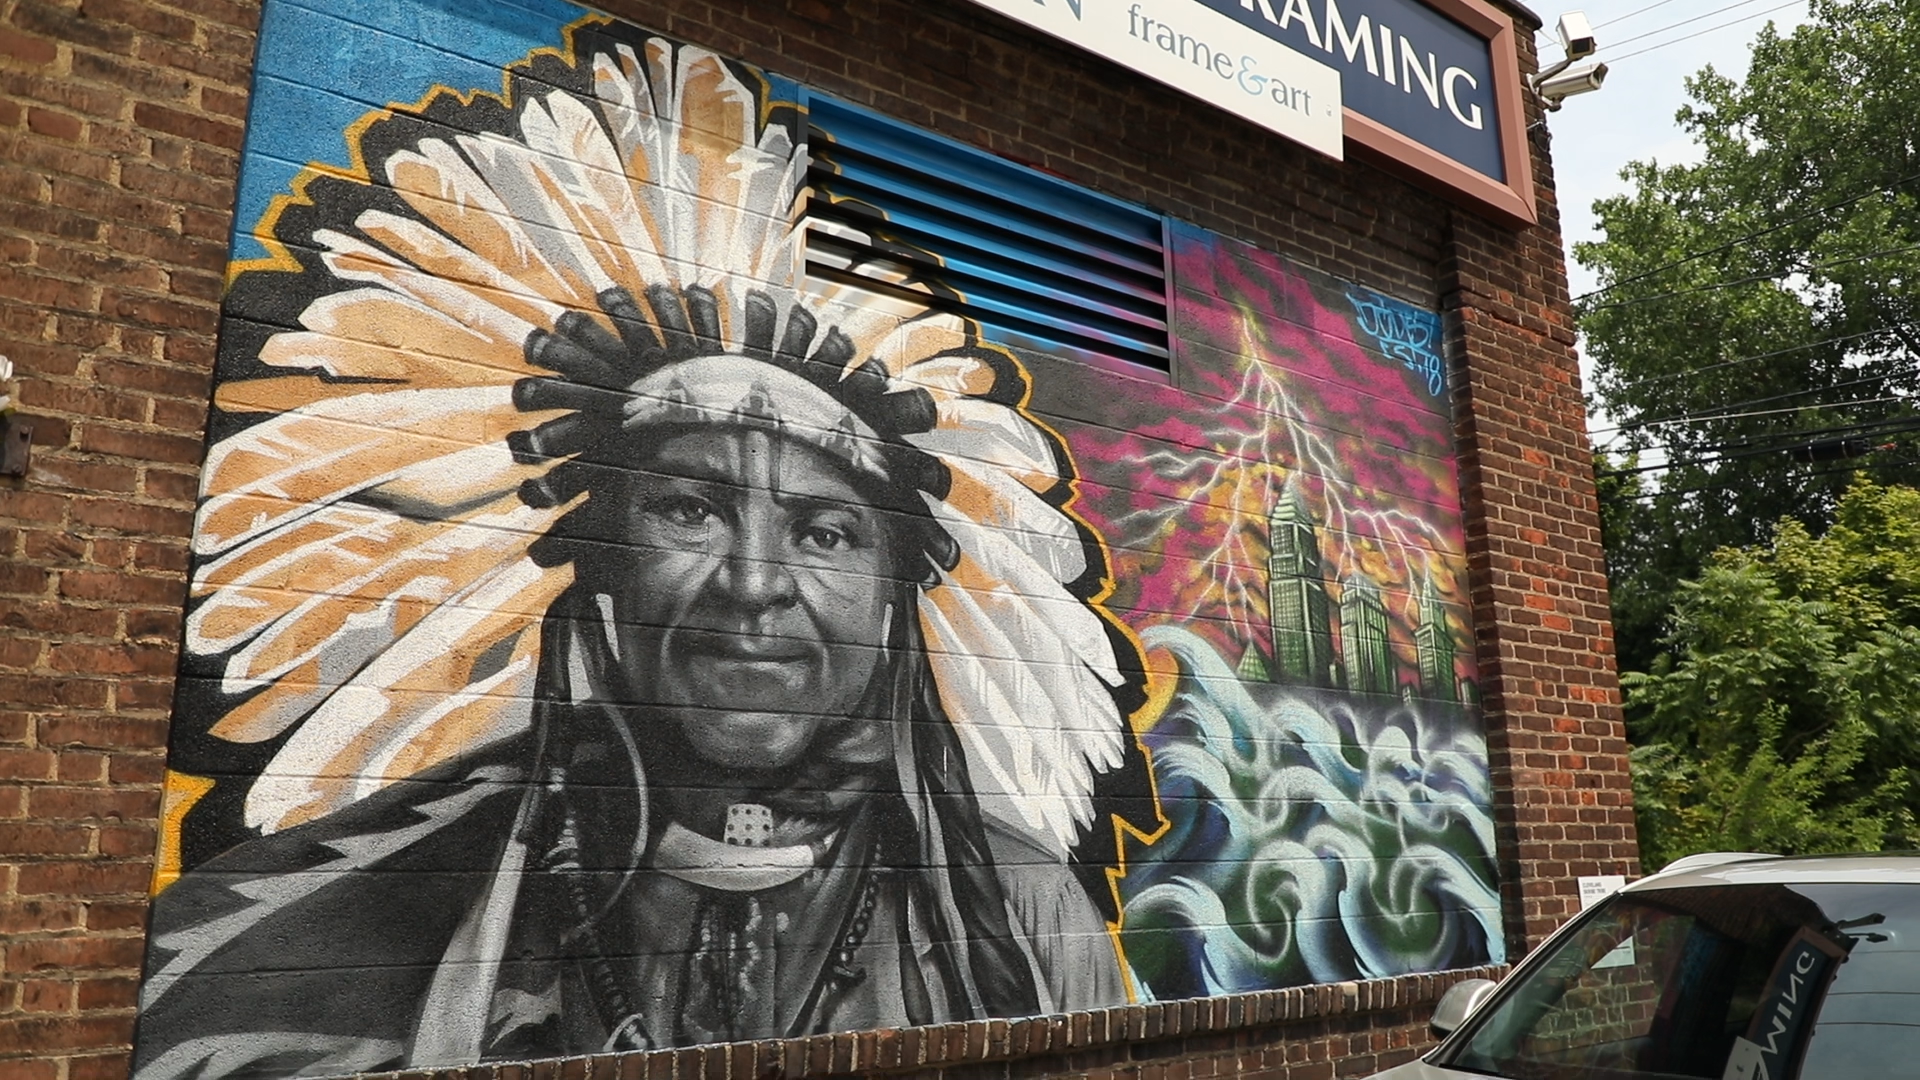 Graffiti artist and his crew return to cleveland to create mural